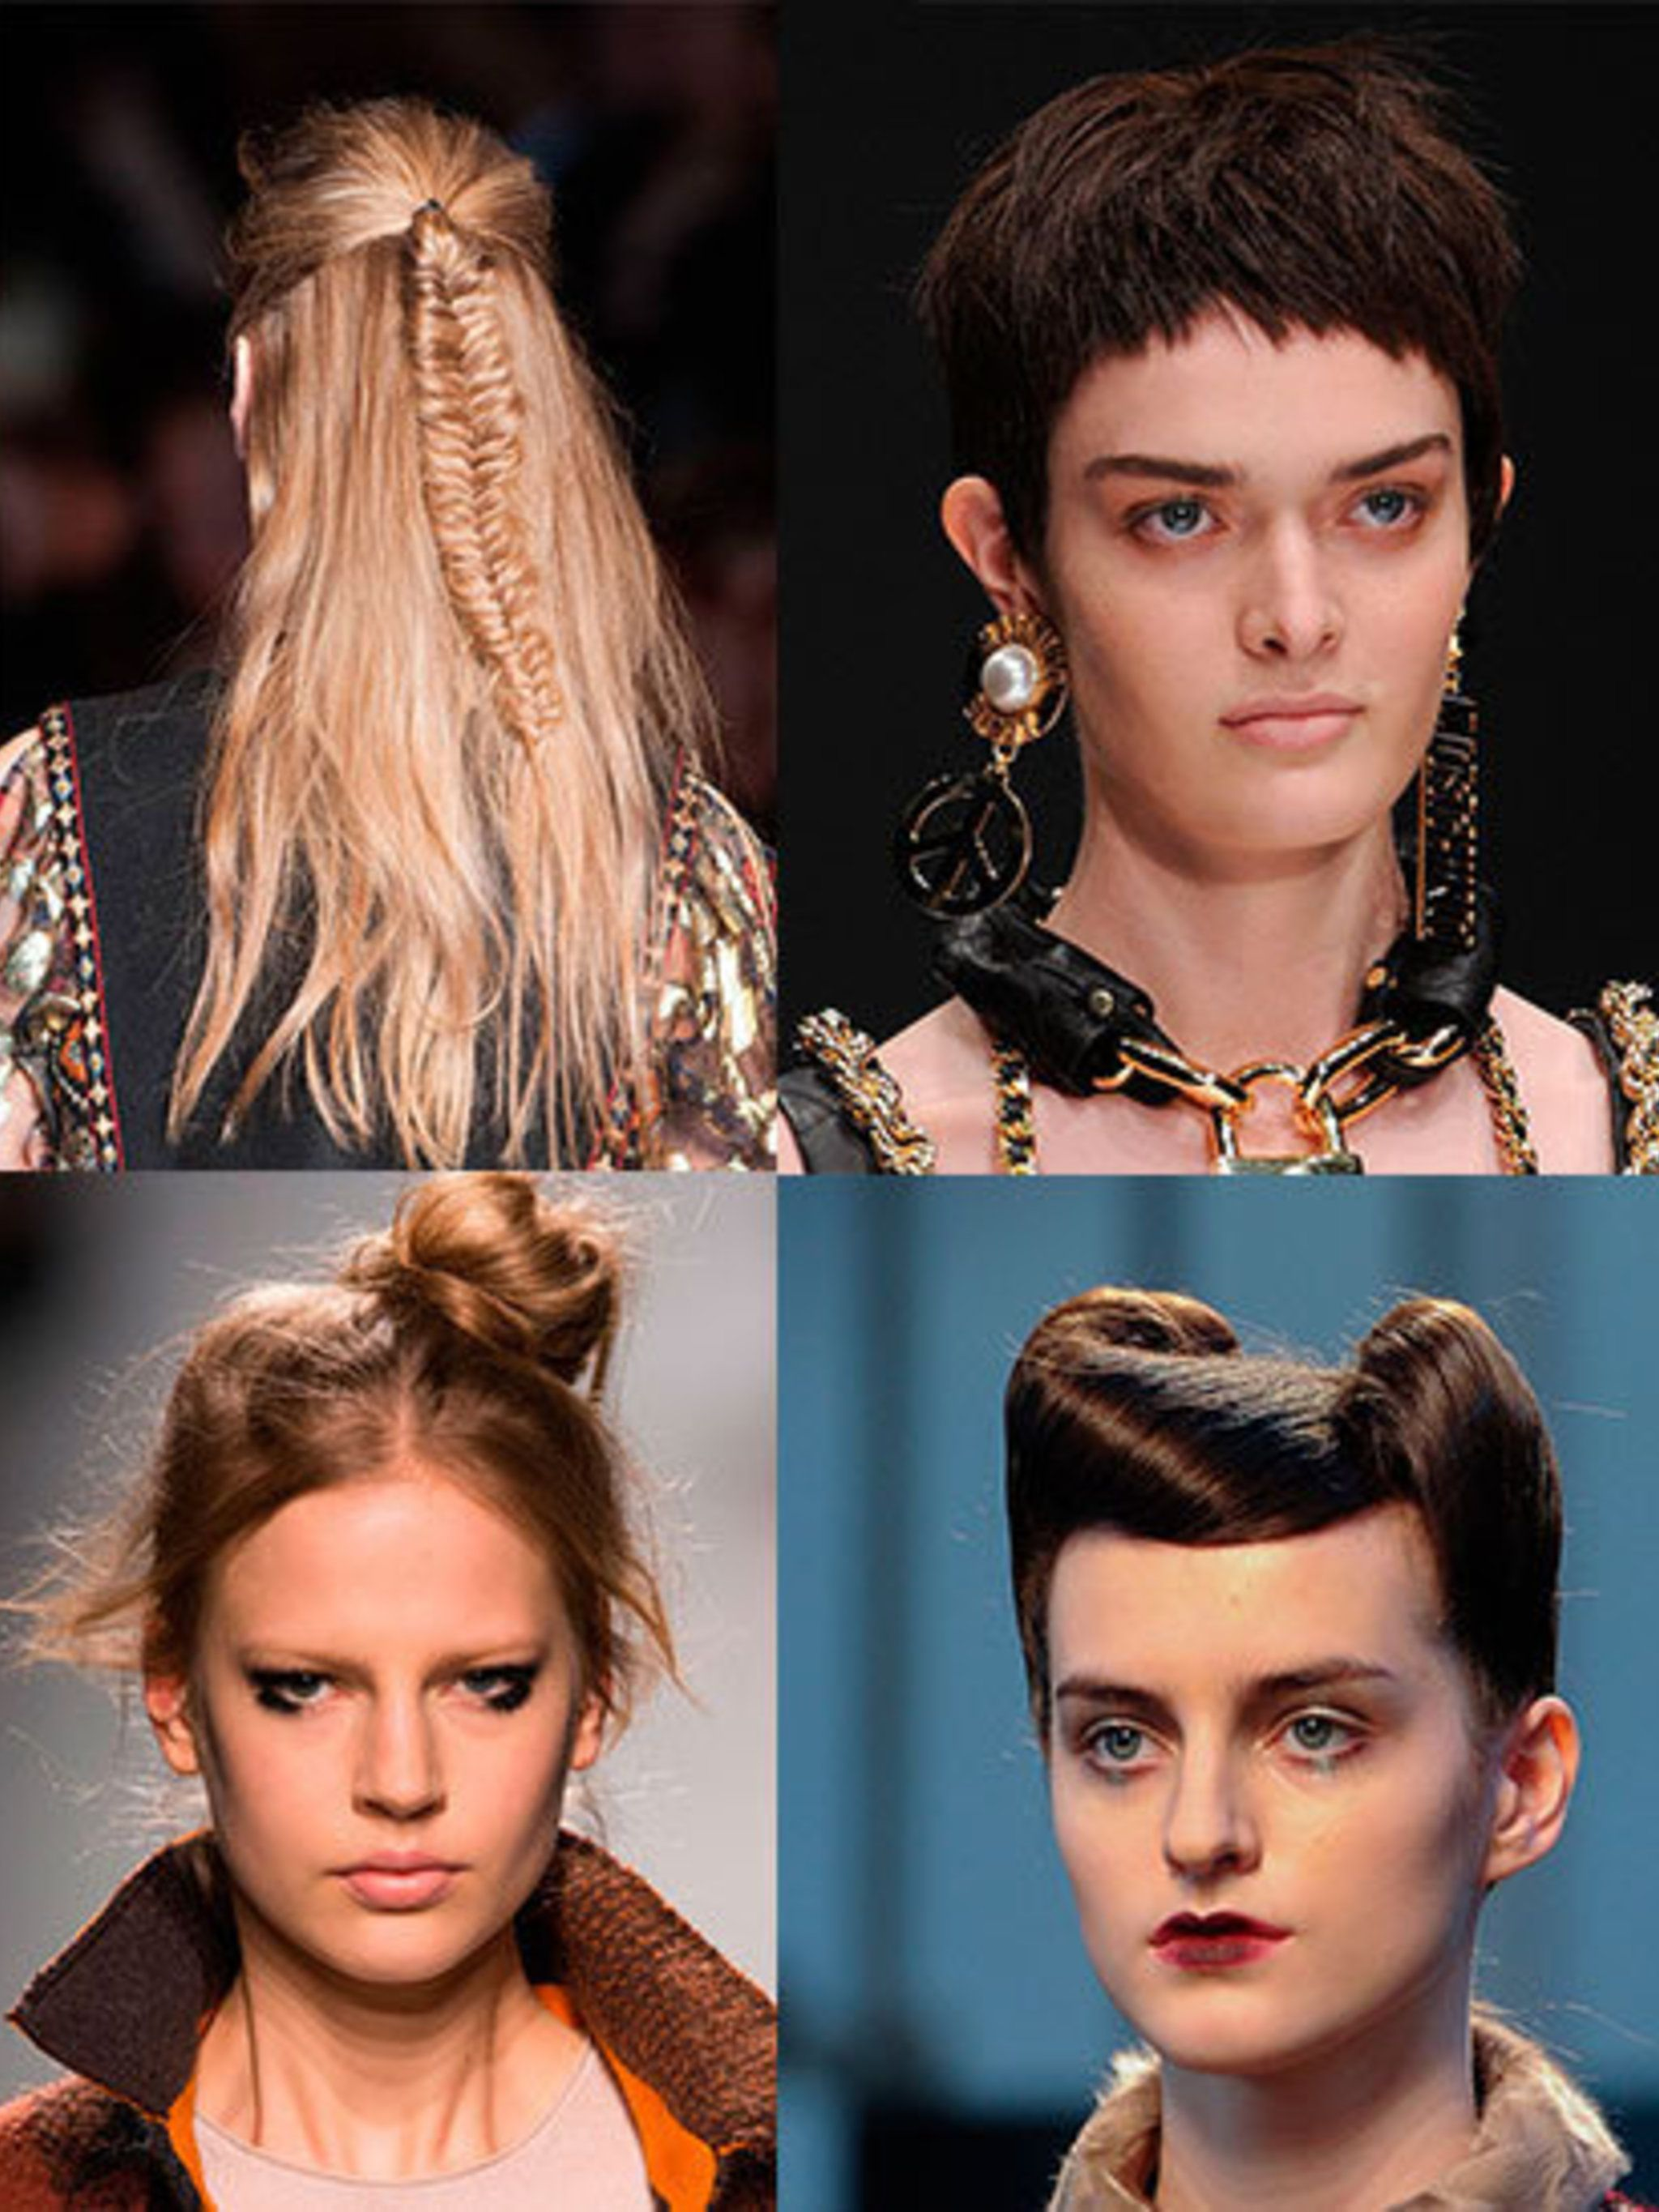 "<p>The Milanese are connoisseurs when it comes to attention to detail; from intricate braided buns at <a href=""http://www.elleuk.com/catwalk/designer-a-z/dolce-gabbana"">Dolce and Gabbana</a> to delicately dishevelled fishtail plaits at <a href=""http://www"